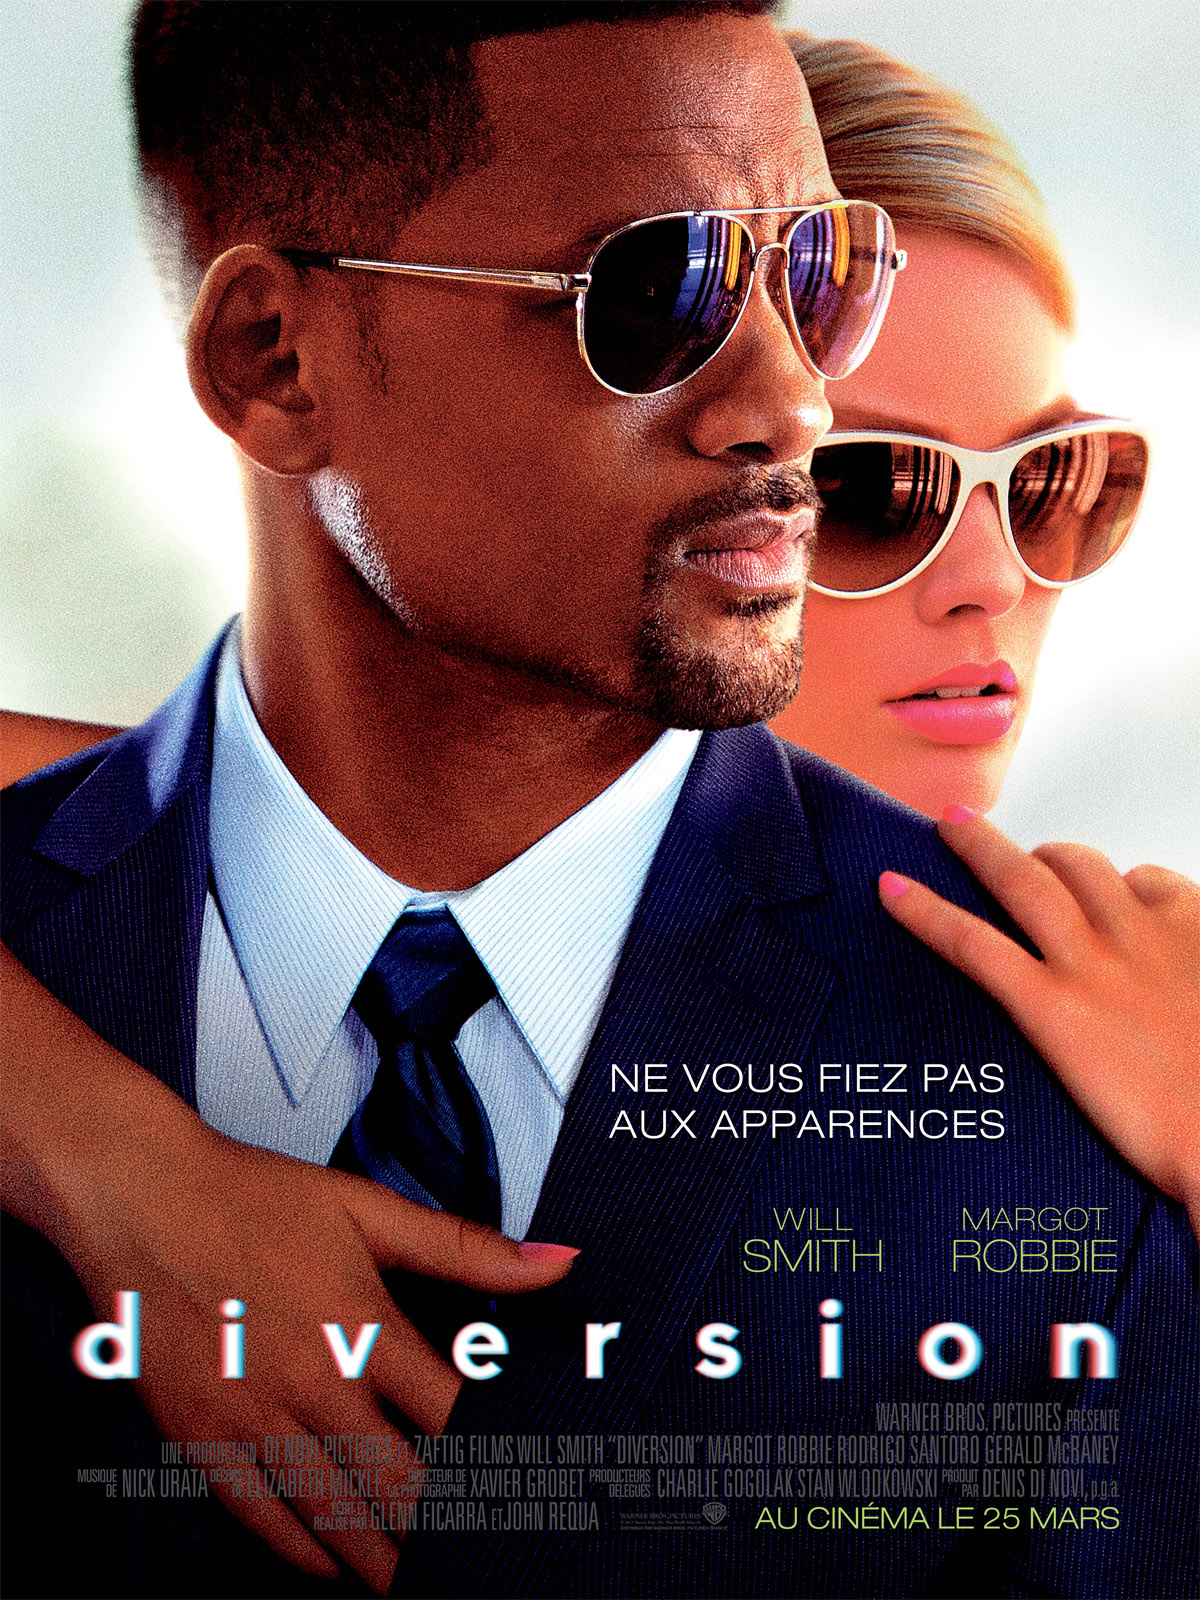 Film De Will Smith : smith, Between, Discretion, Diversion,, Stealing, Great, #PeopleRoundTheCorner